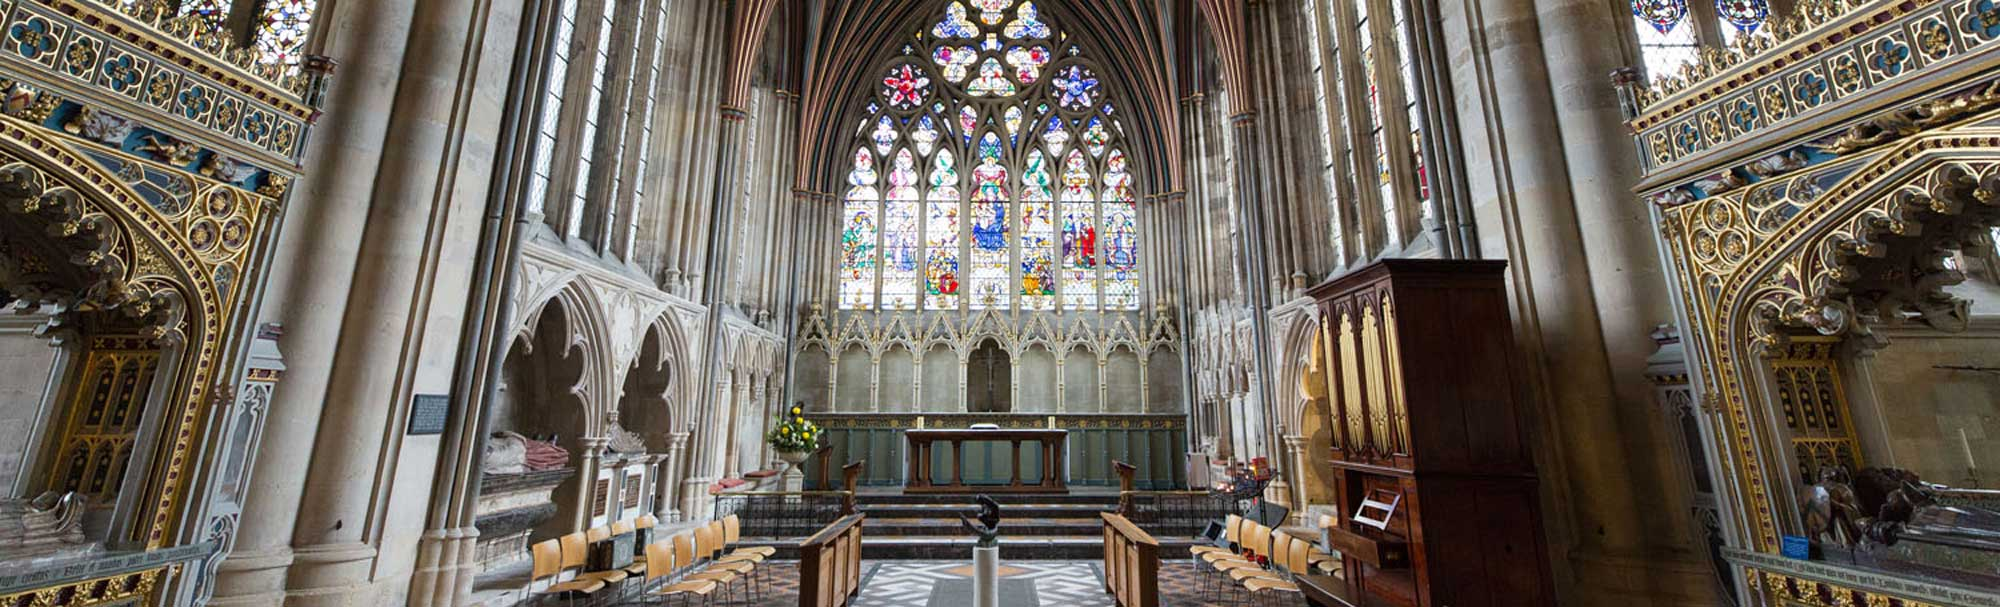 The Lady Chapel, Exeter Cathedral